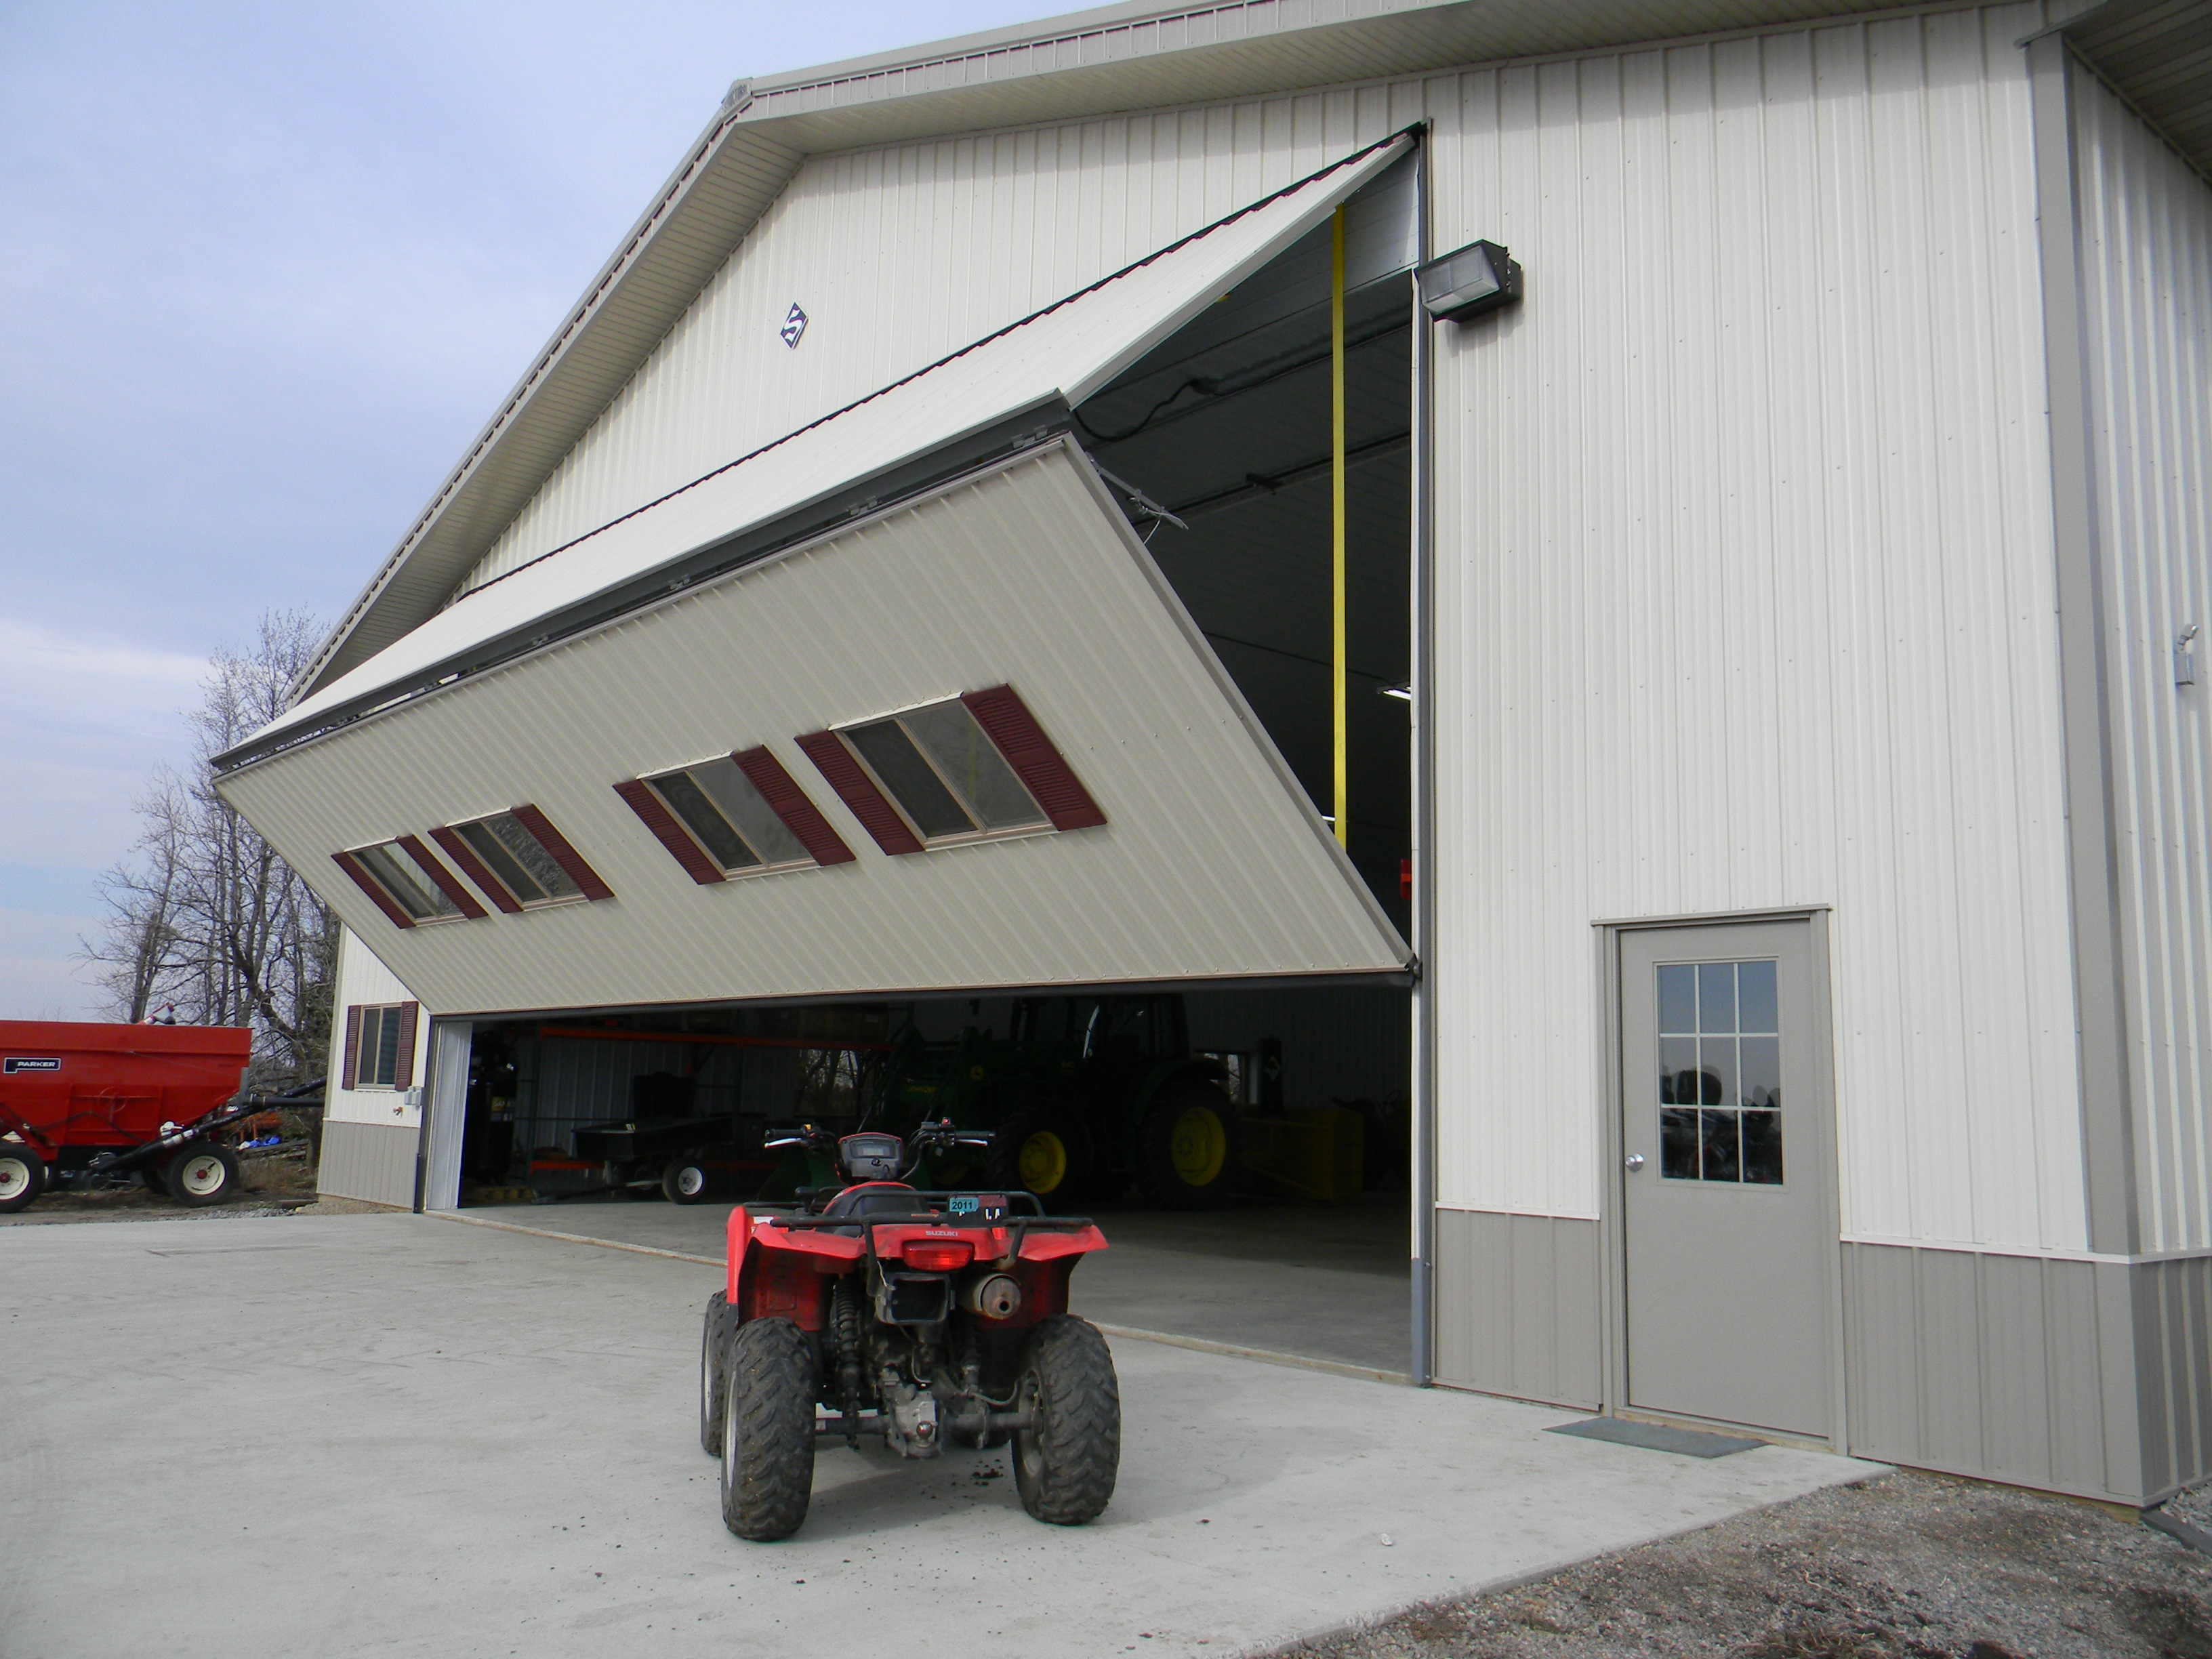 Farmers and ranchers rely on Schweiss doors for machine sheds to store large machinery. & Schweiss Doors has long been the farmersu0027 friend | Schweiss Bifold ...